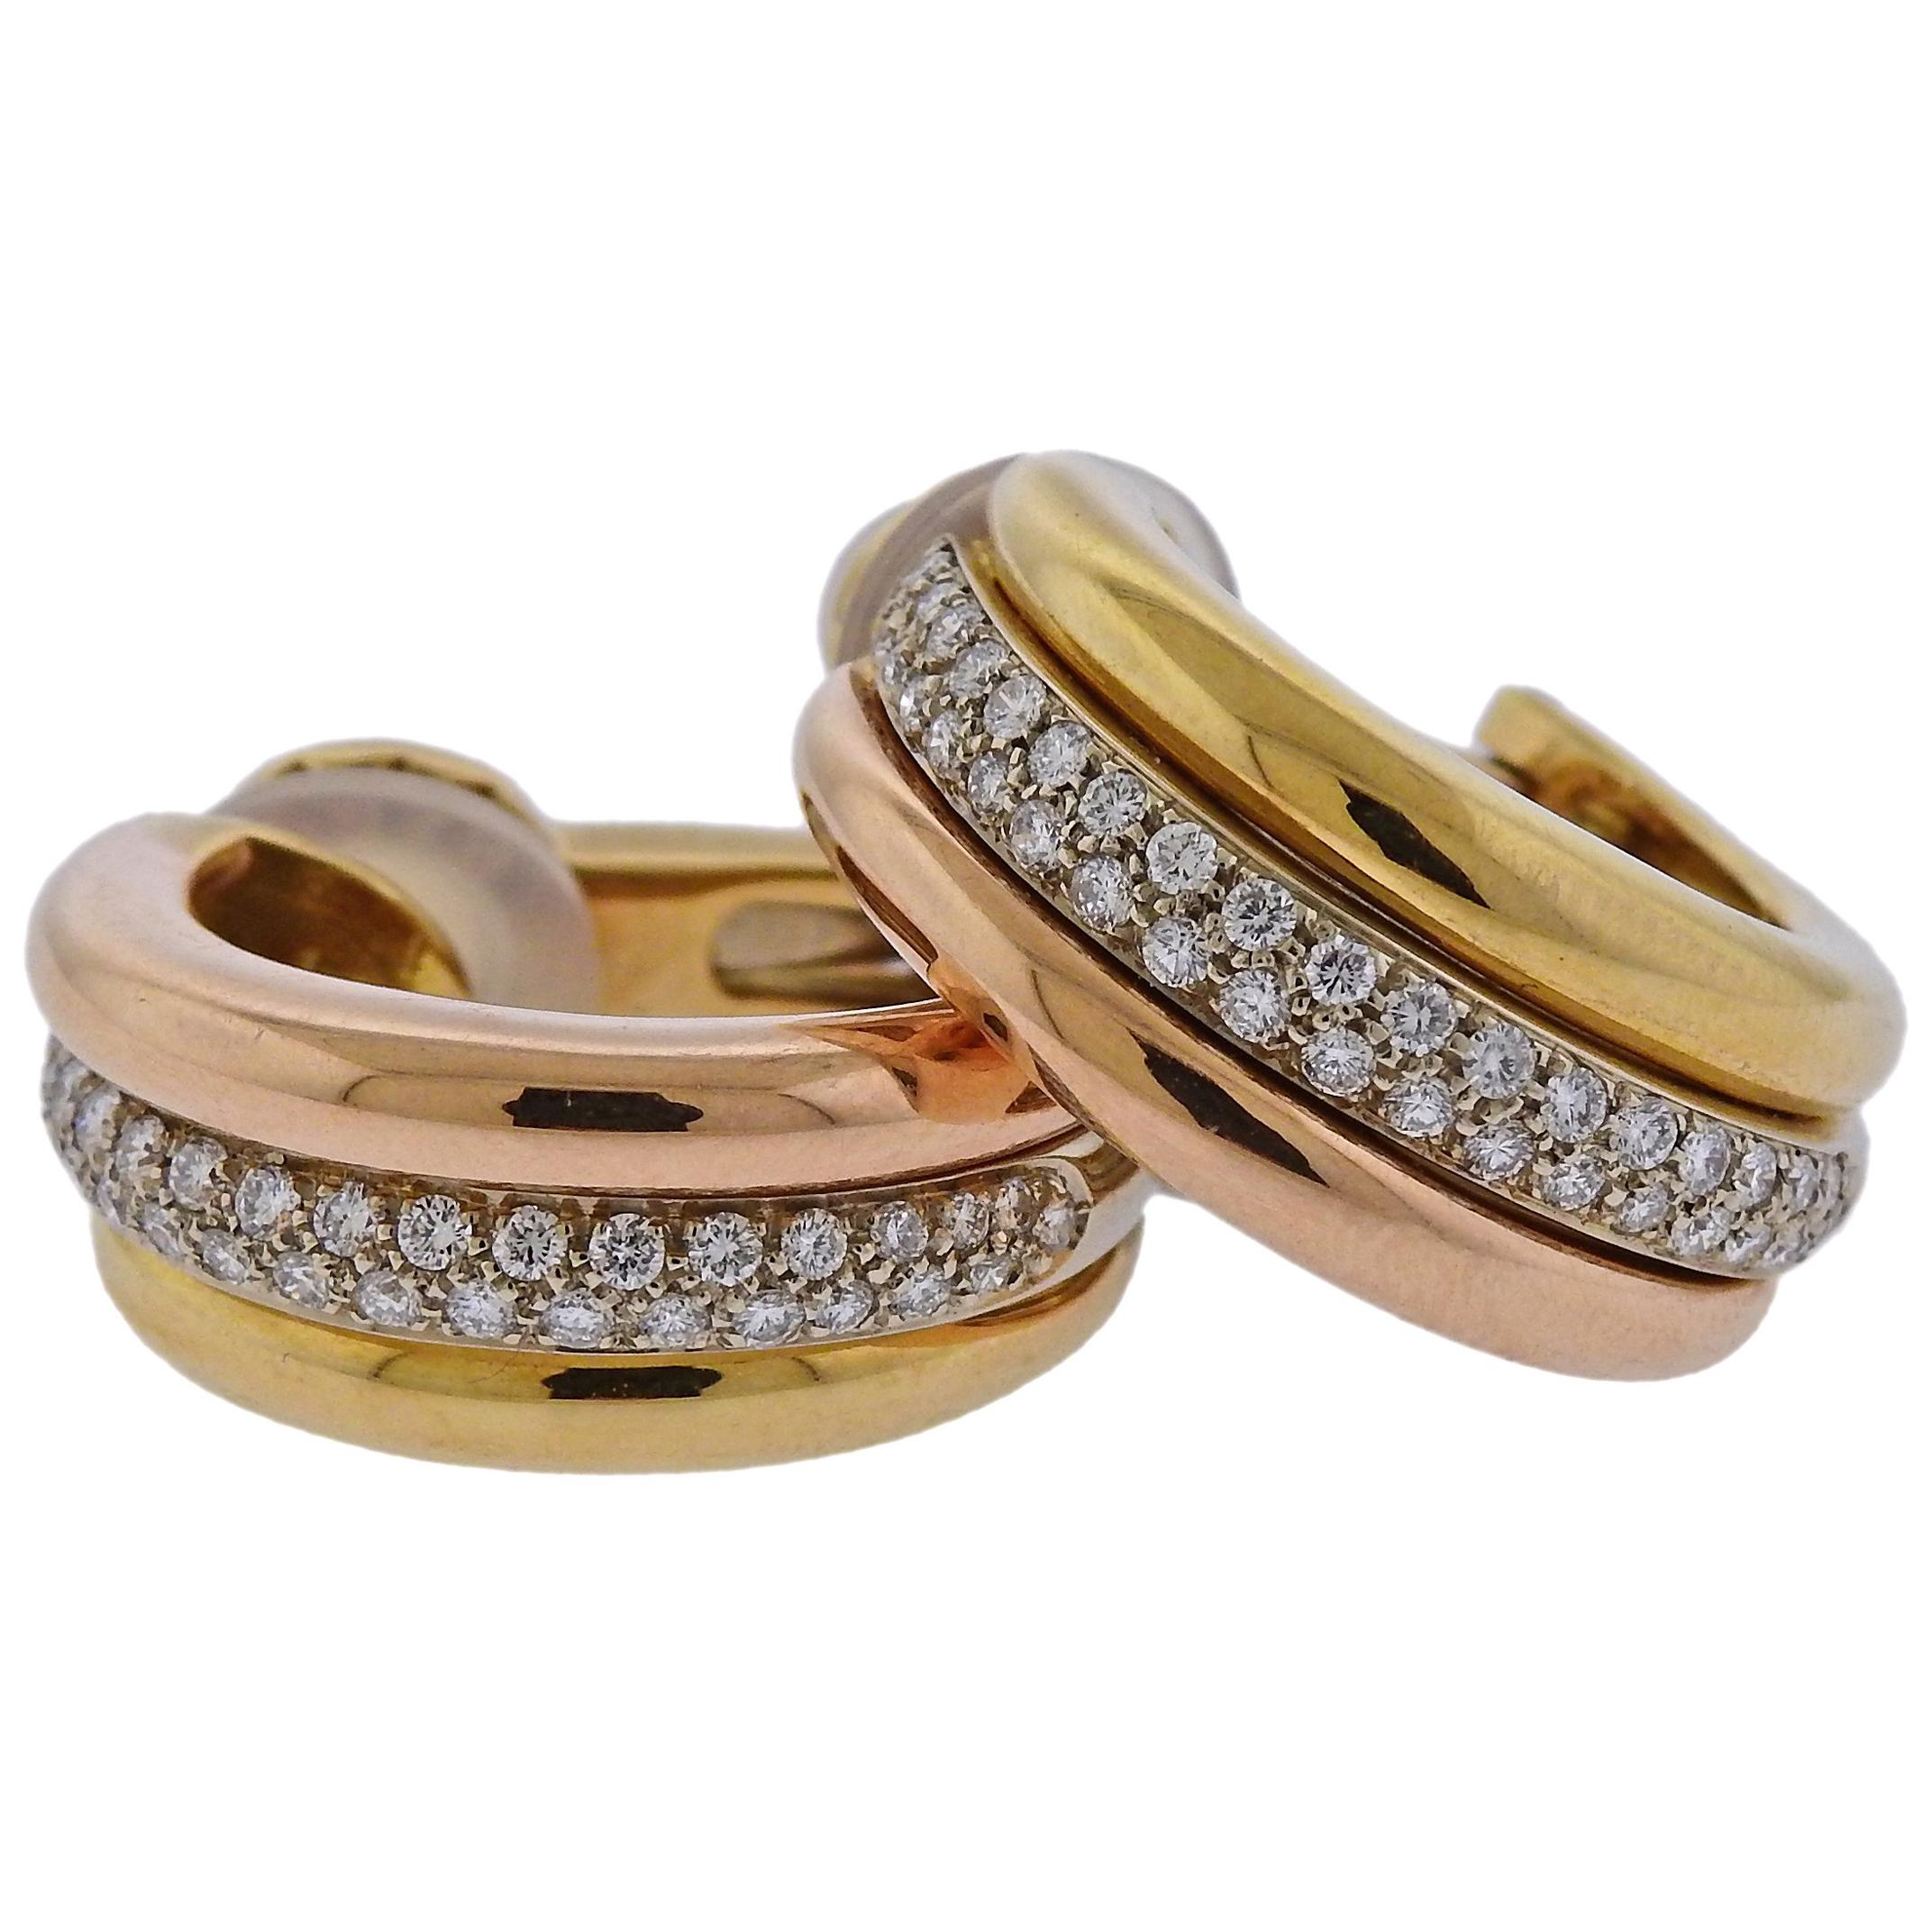 Cartier Diamond Gold Hoop Earrings